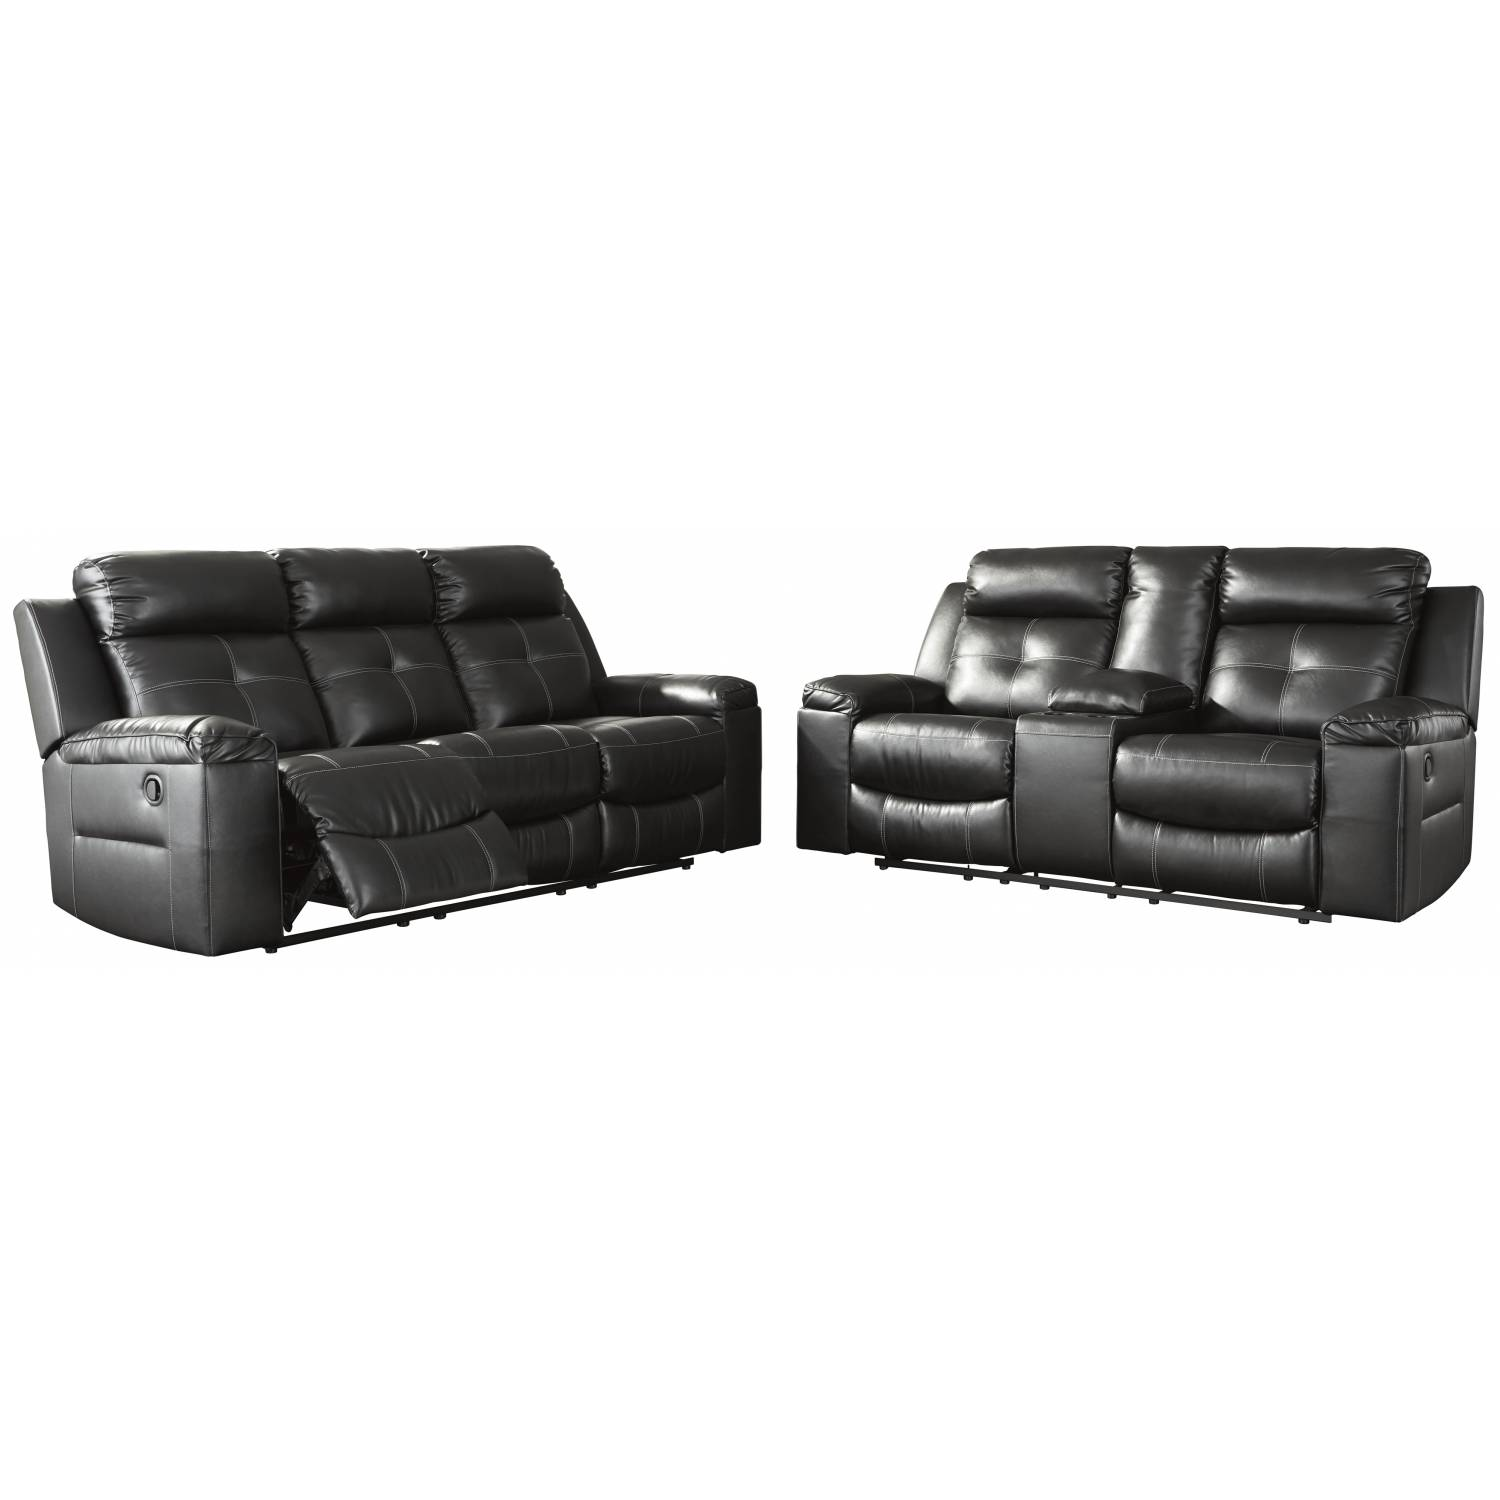 82105 Kempten 2pc sets Reclining Sofa + DBL Rec Loveseat w/Console